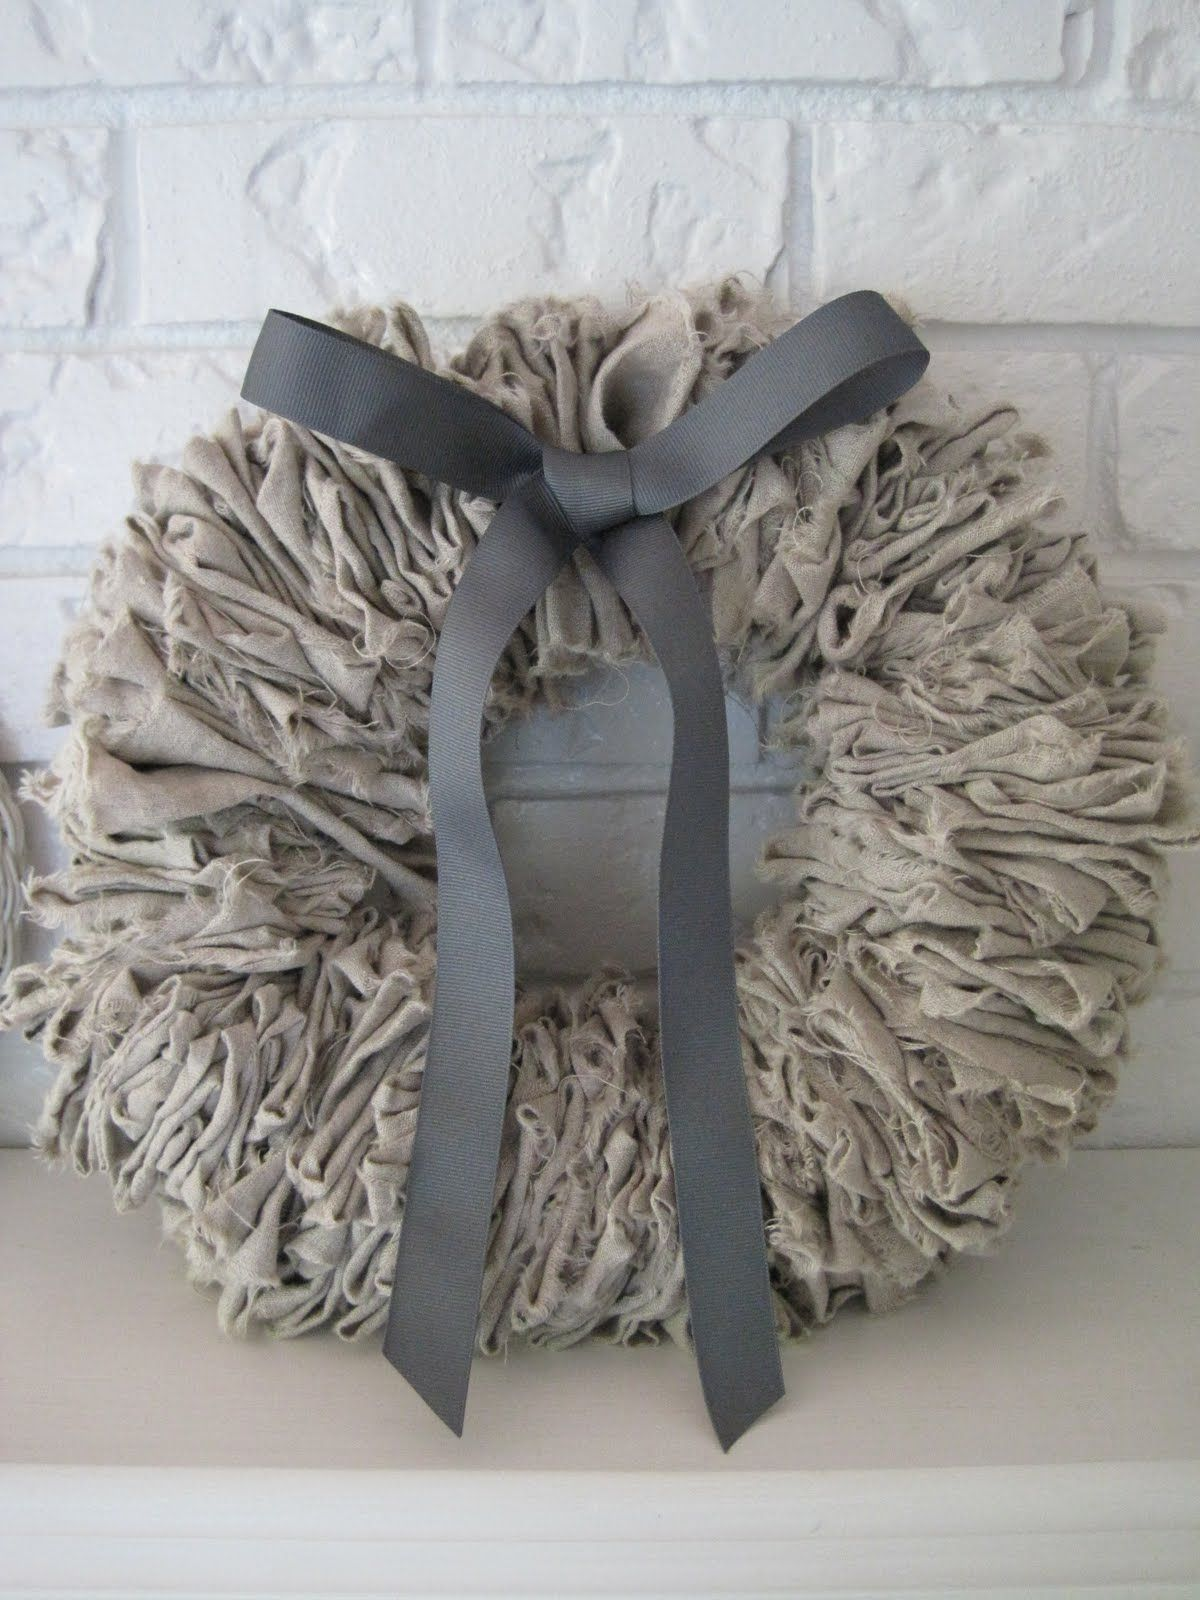 DIY: How to Make a Linen Wreath - using a wire coat hanger, pliers ...